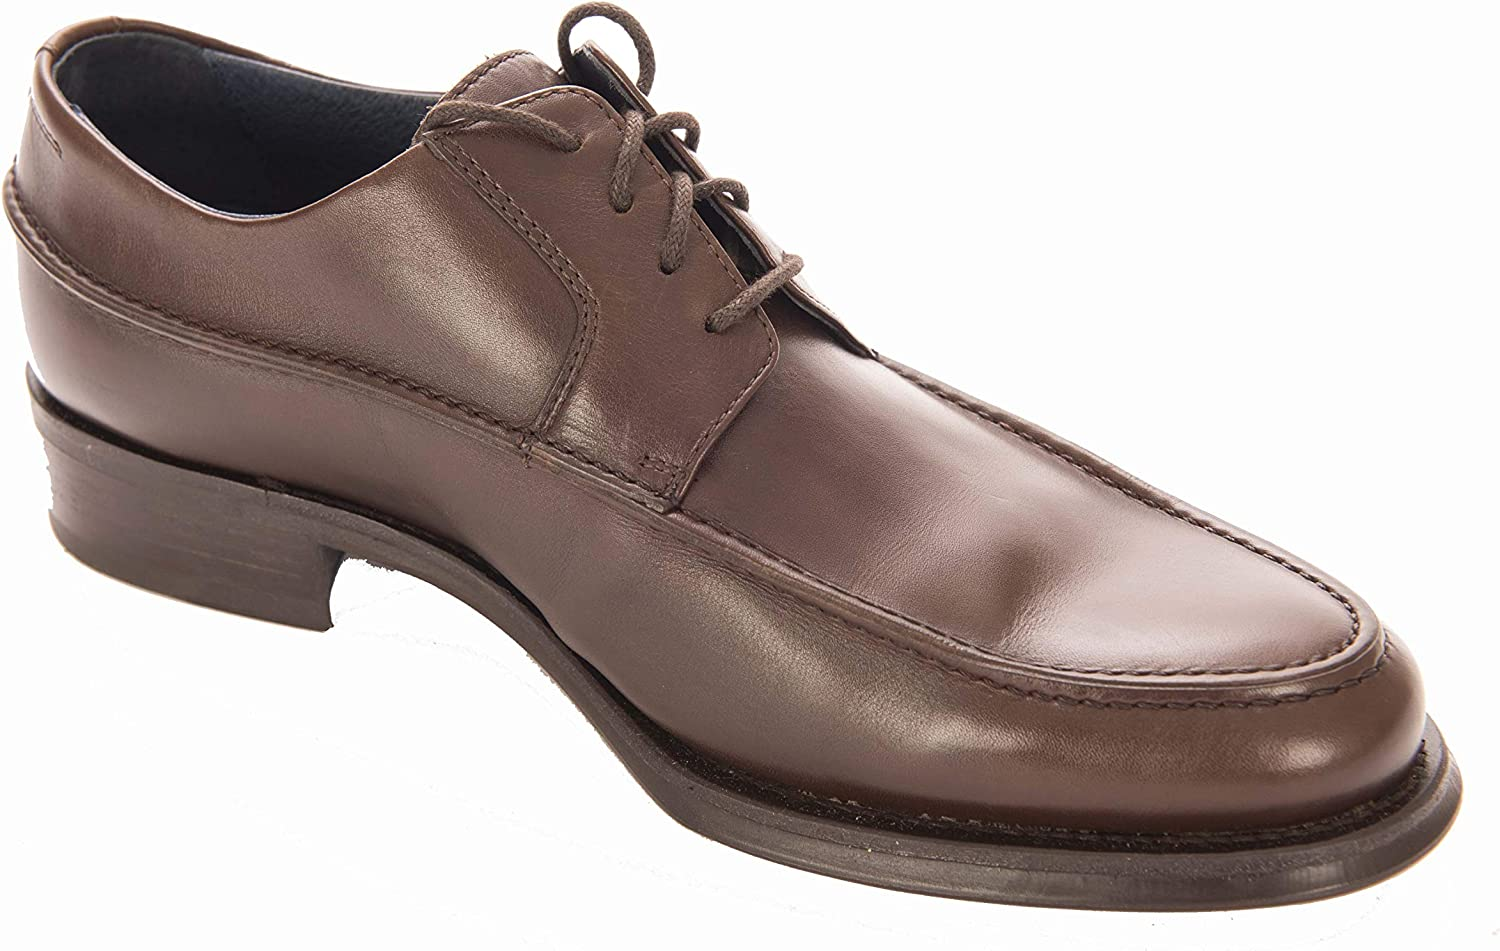 Arnold Brant by Bacco Bucci Brown Lace Up Dress shoes 100% Leather